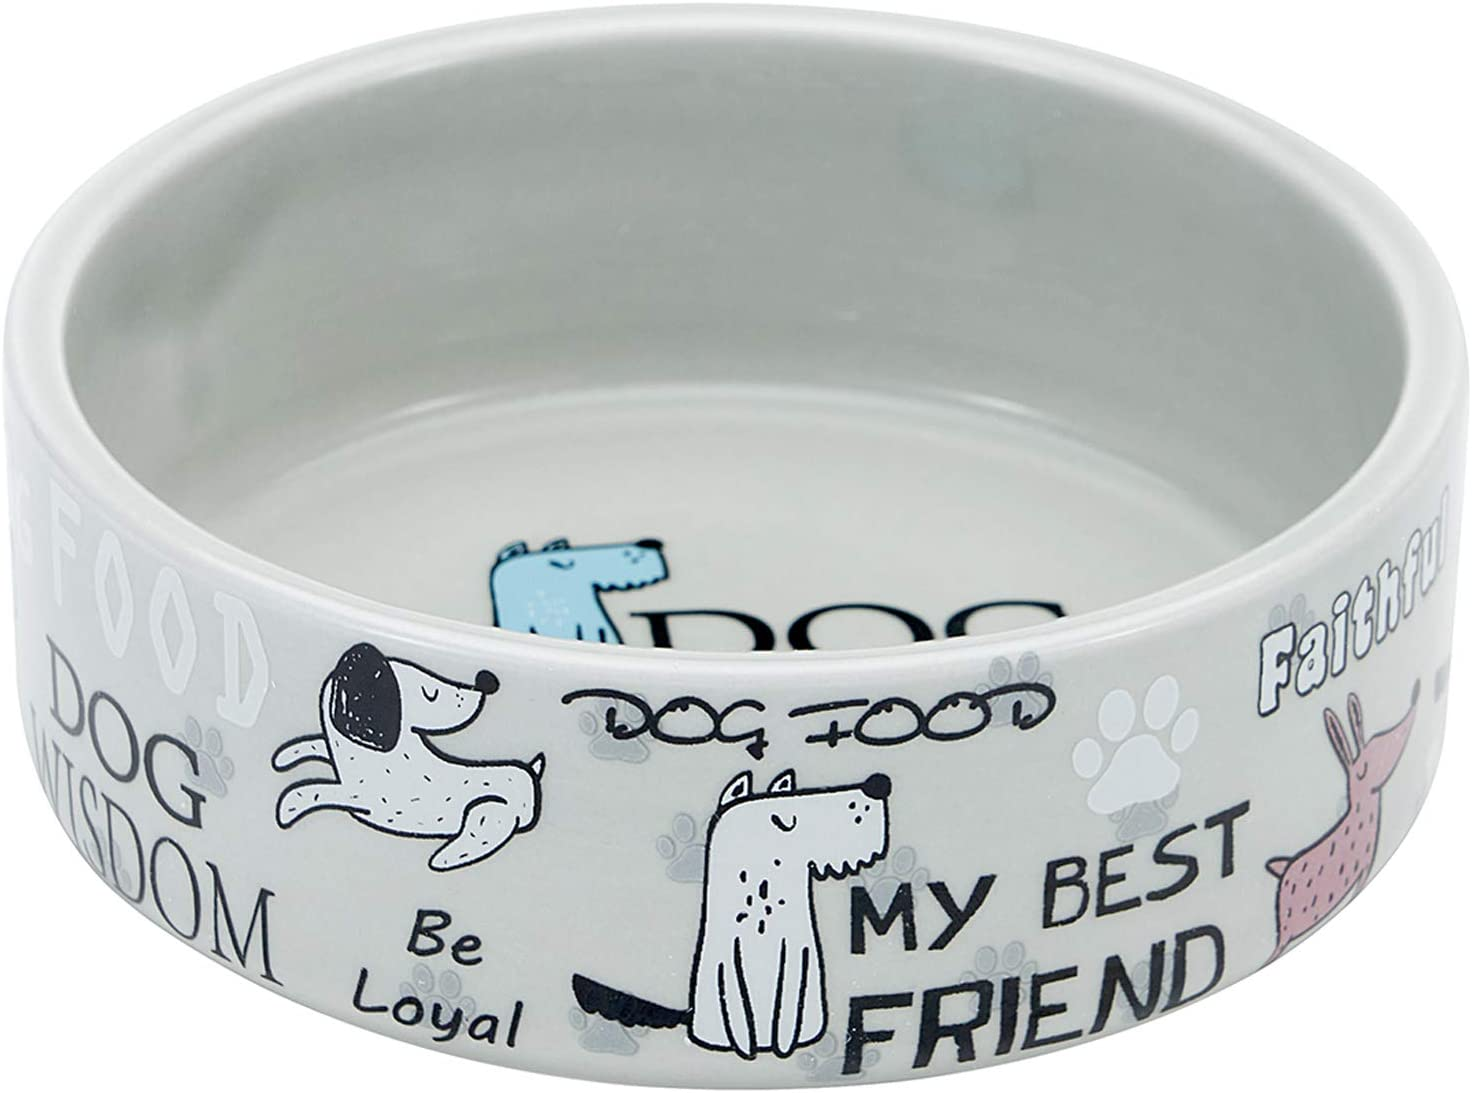 5-inch Ceramic Dog Bowl Cartoon Pattern, Cute, Chew-Proof, Dishwasher and Microwave Safe